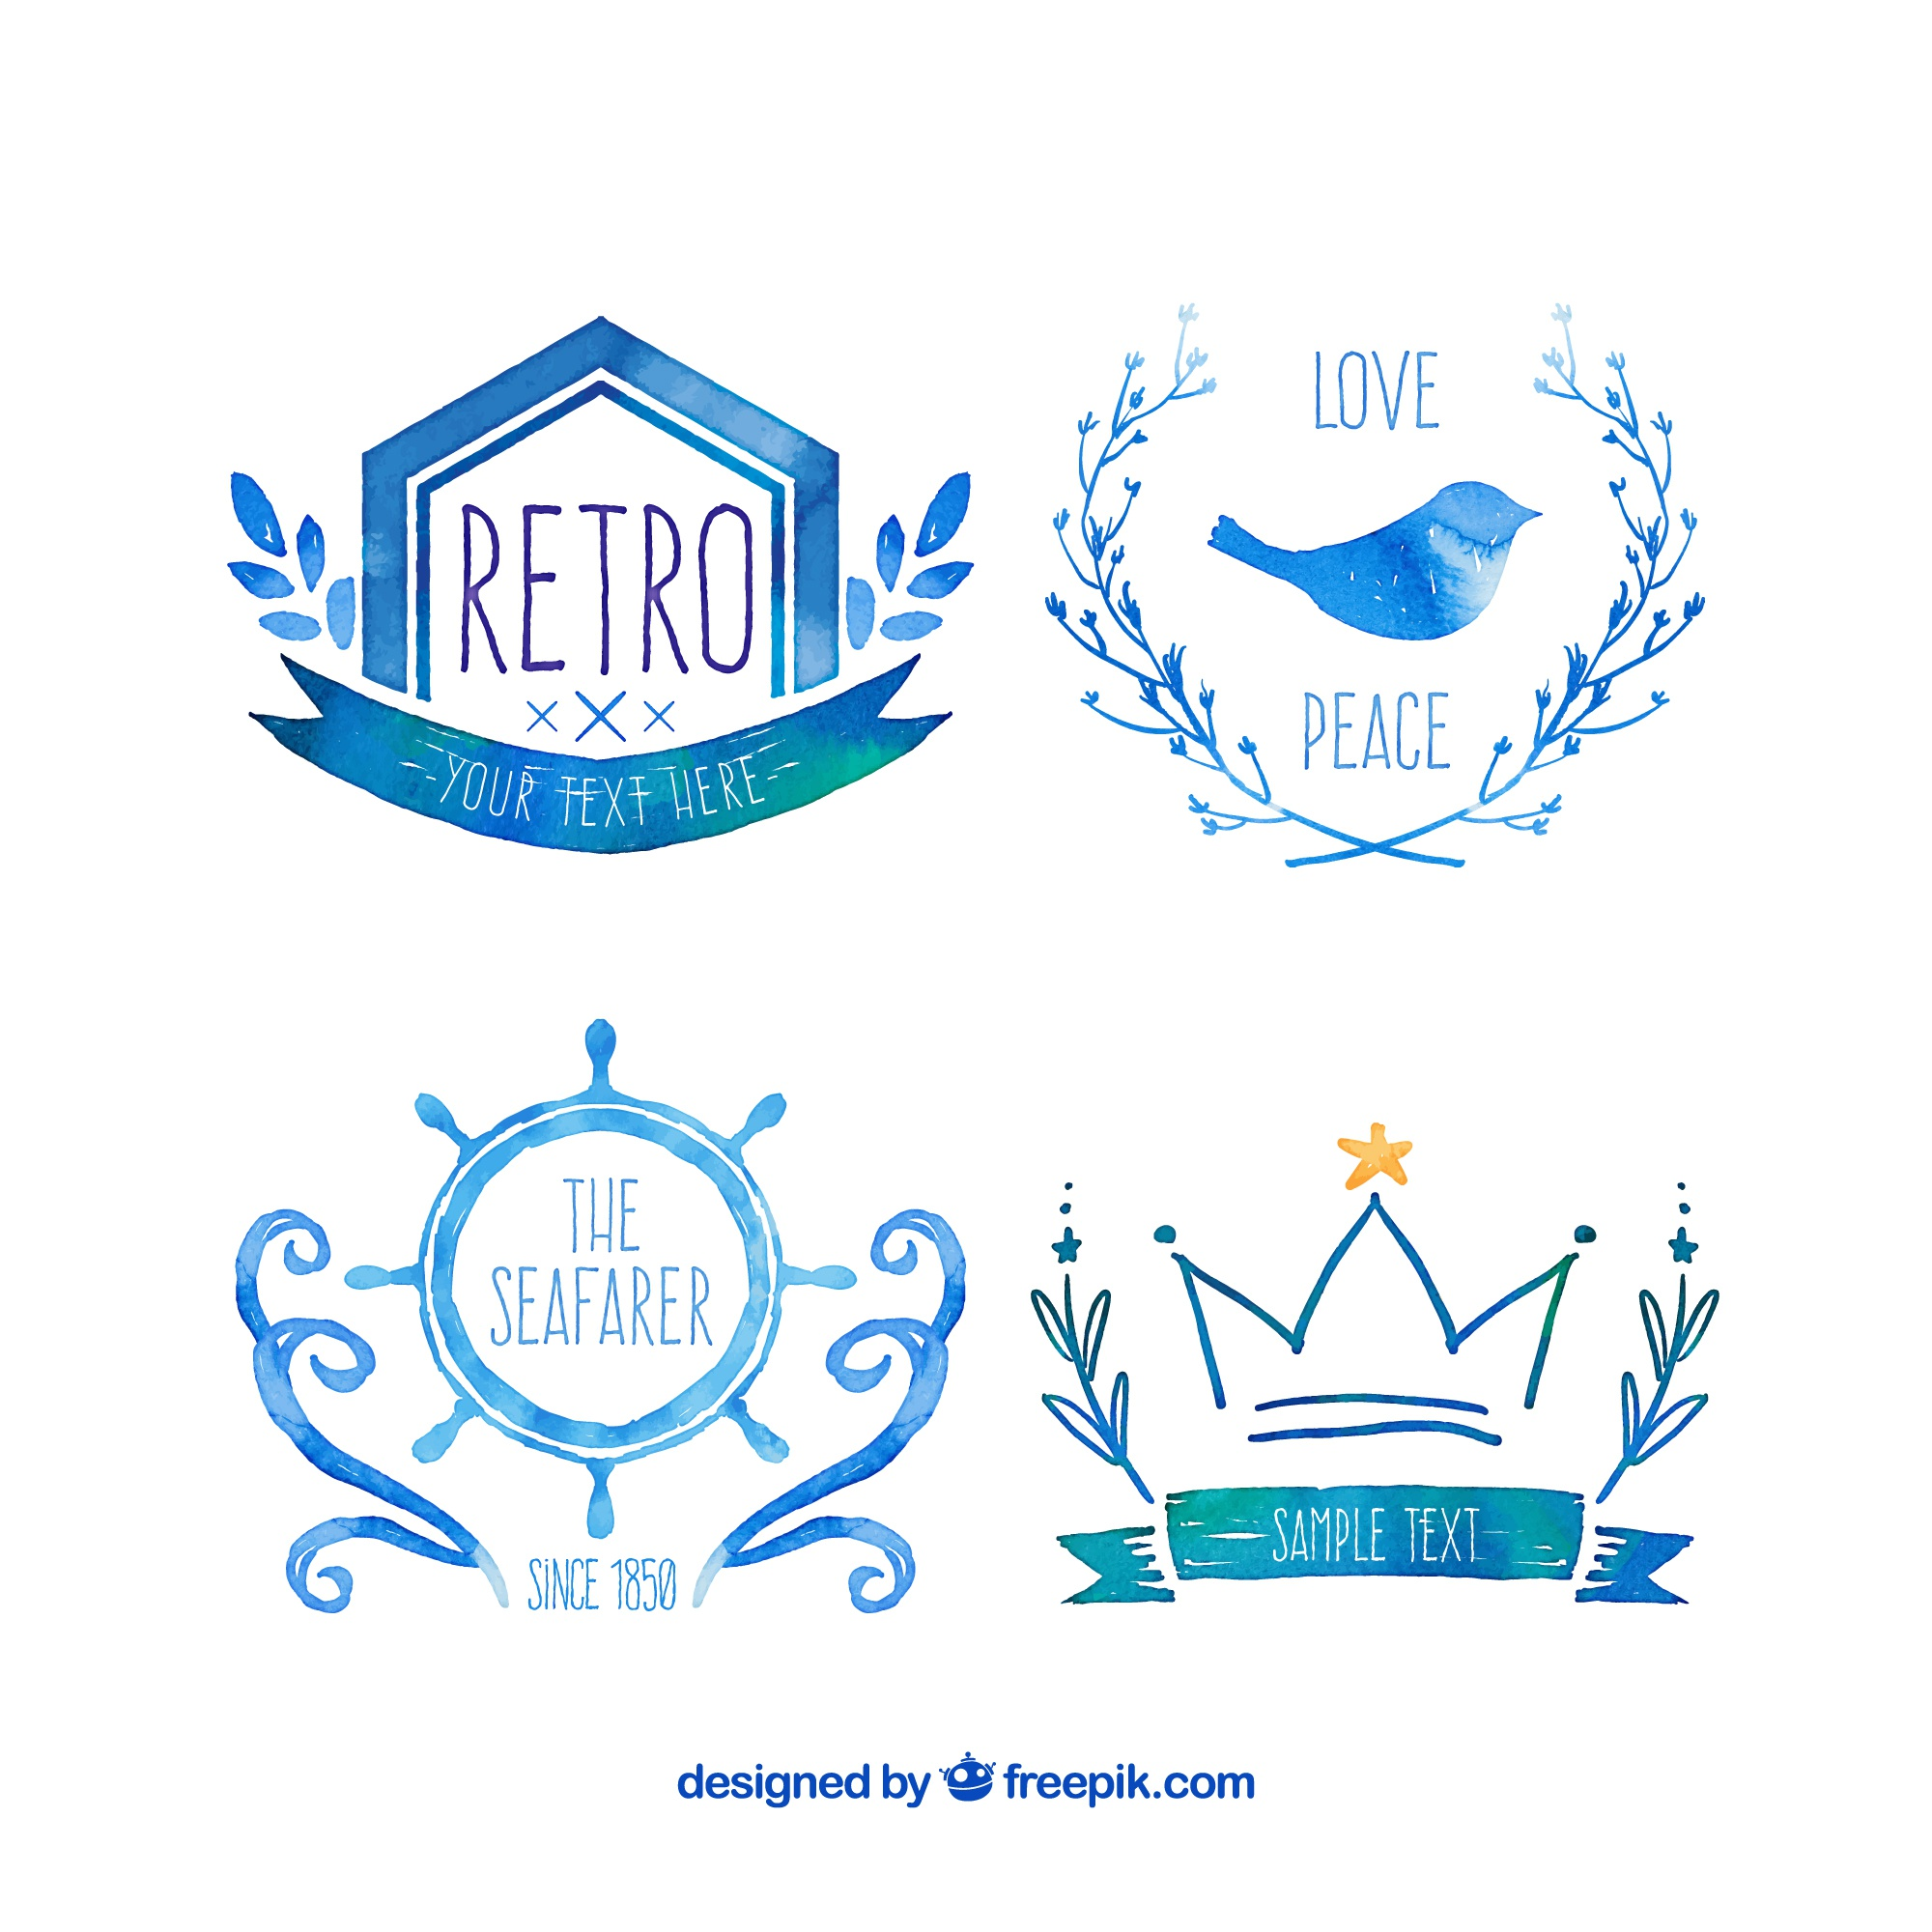 Watercolor blue logos in retro style